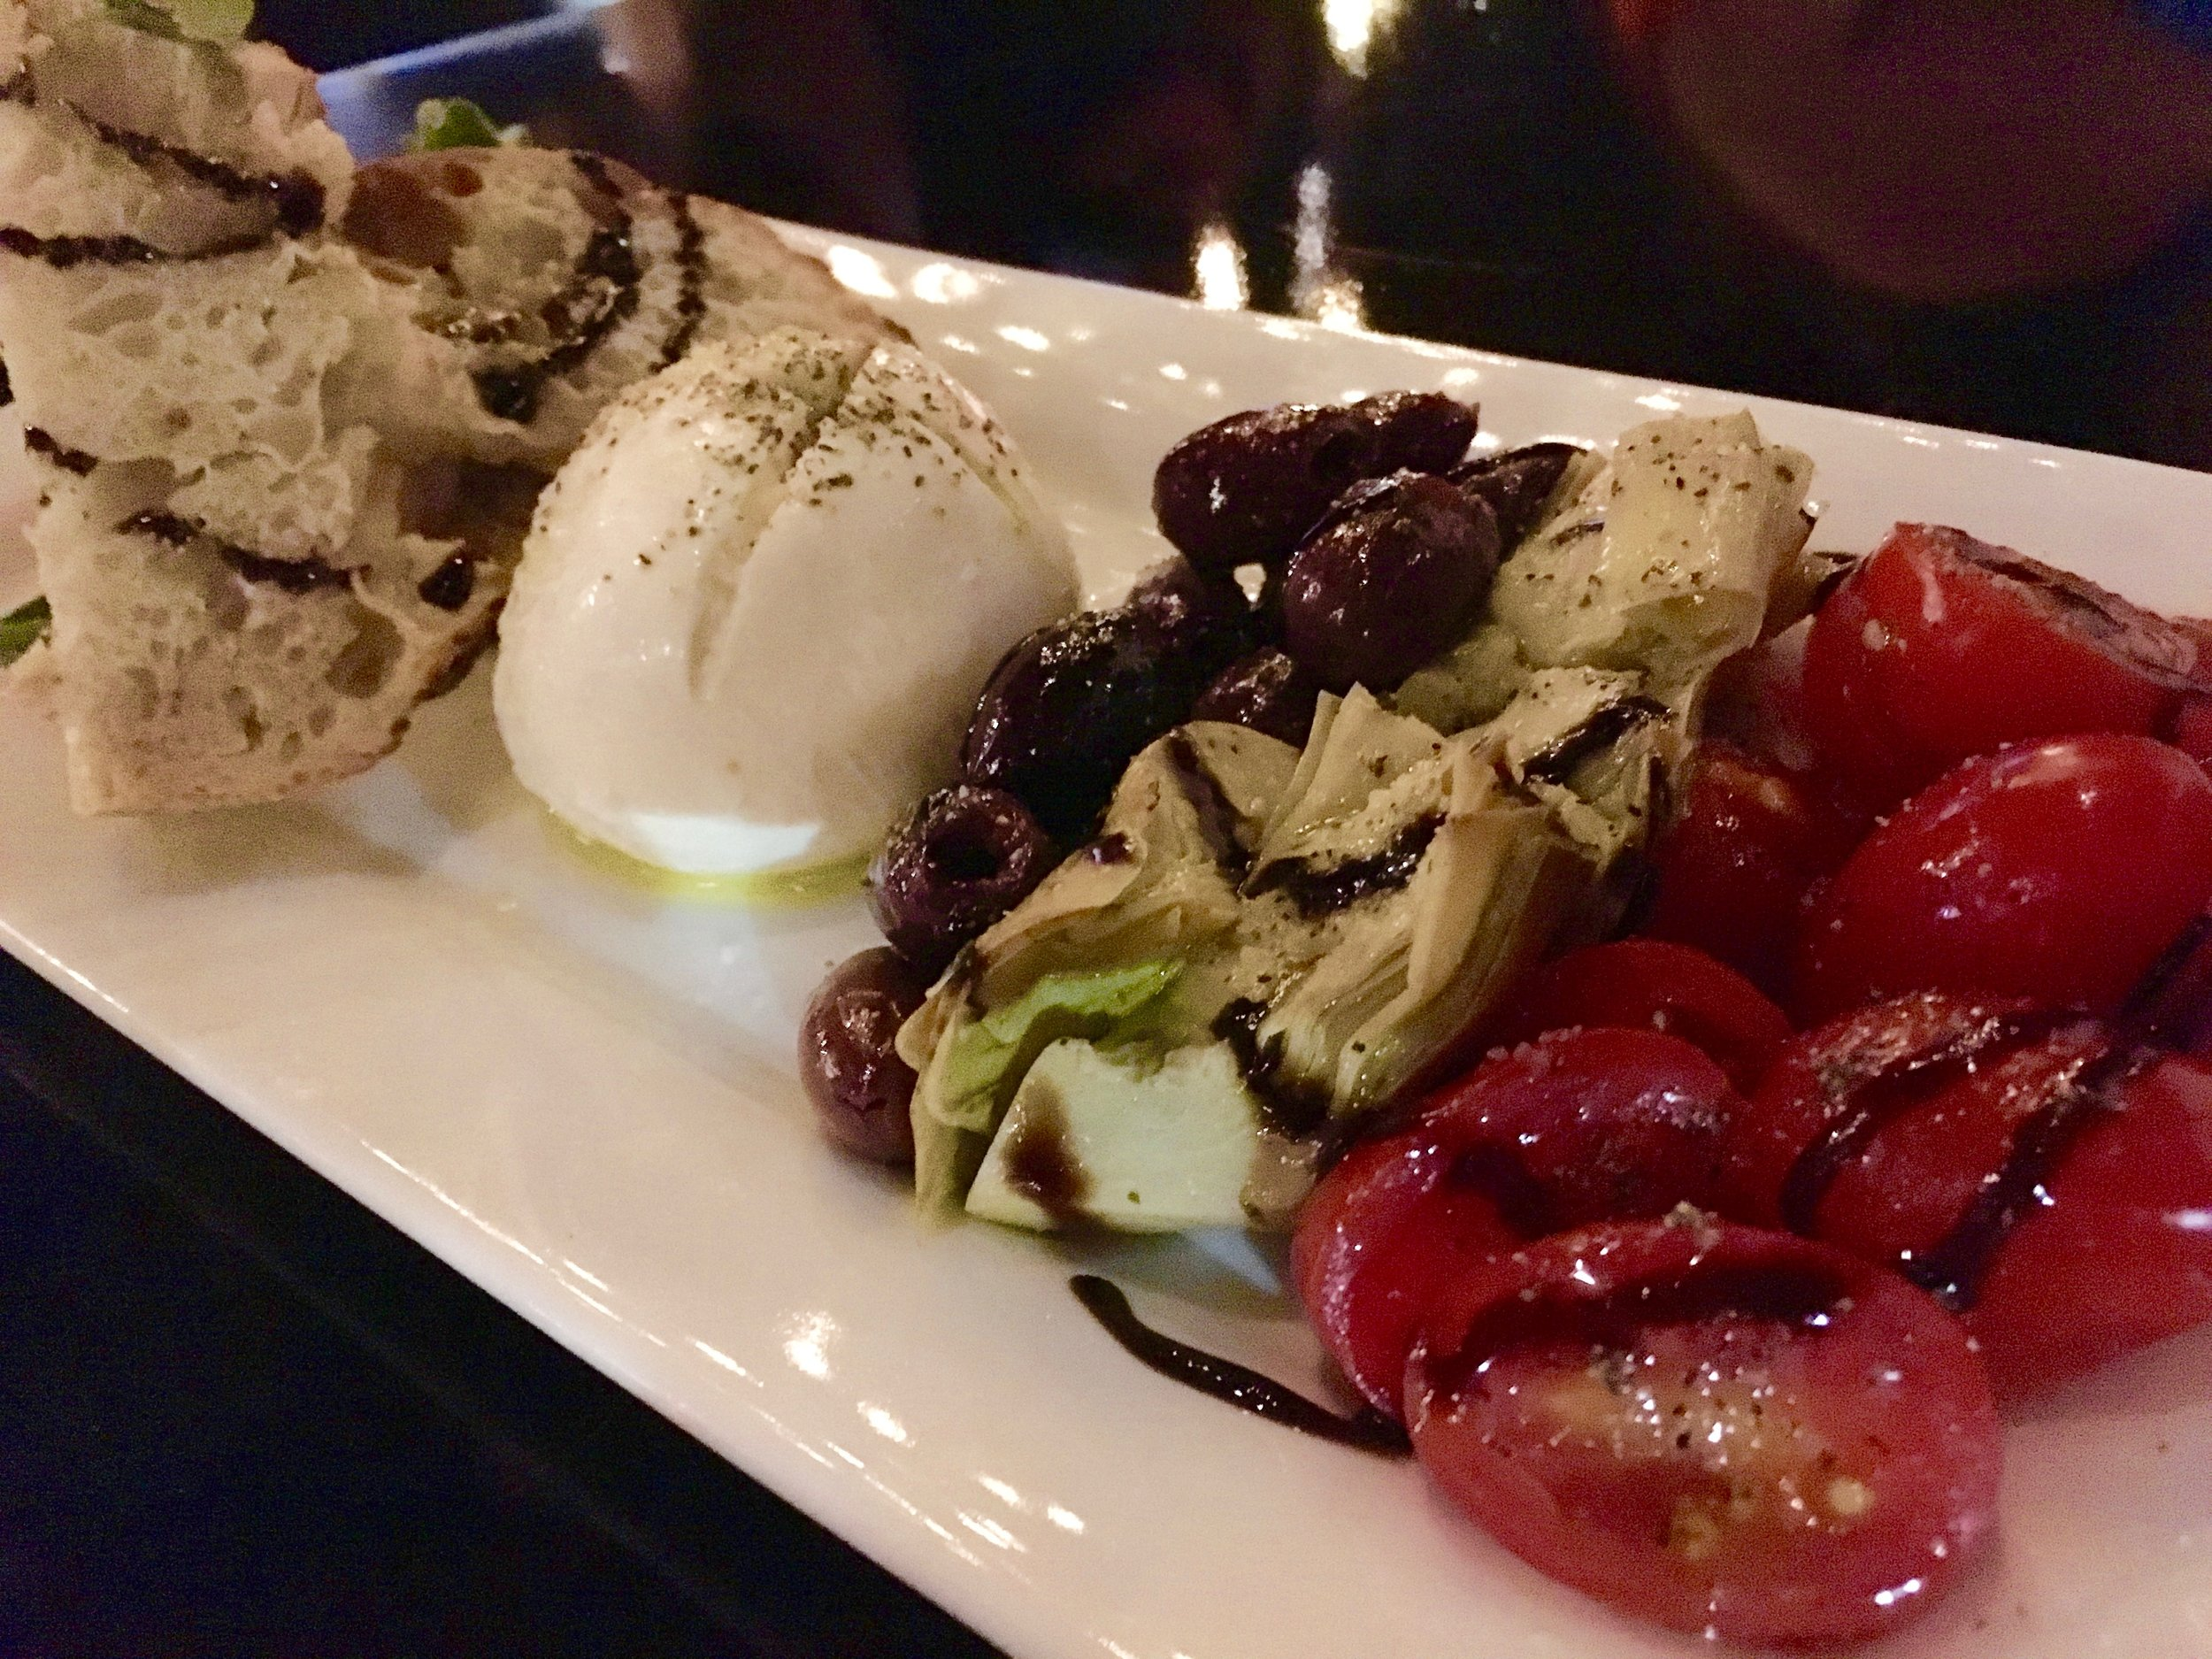 """MidiCi offers four presentations of """"artisan"""" burrata, which is a soft mozzarella cheese with a soft center. According to the menu, """"Each fresh burrata cheese is hand-formed and made from fresh milk gathered daily from local farmers."""" Here in Orlando, or back in L.A,? I'm curious where those farmers are. Still, this was delicious.Here the burrata is topped with a lemon vinaigrette and plated with artichoke hearts, grape tomatoes and kalamata olives ."""